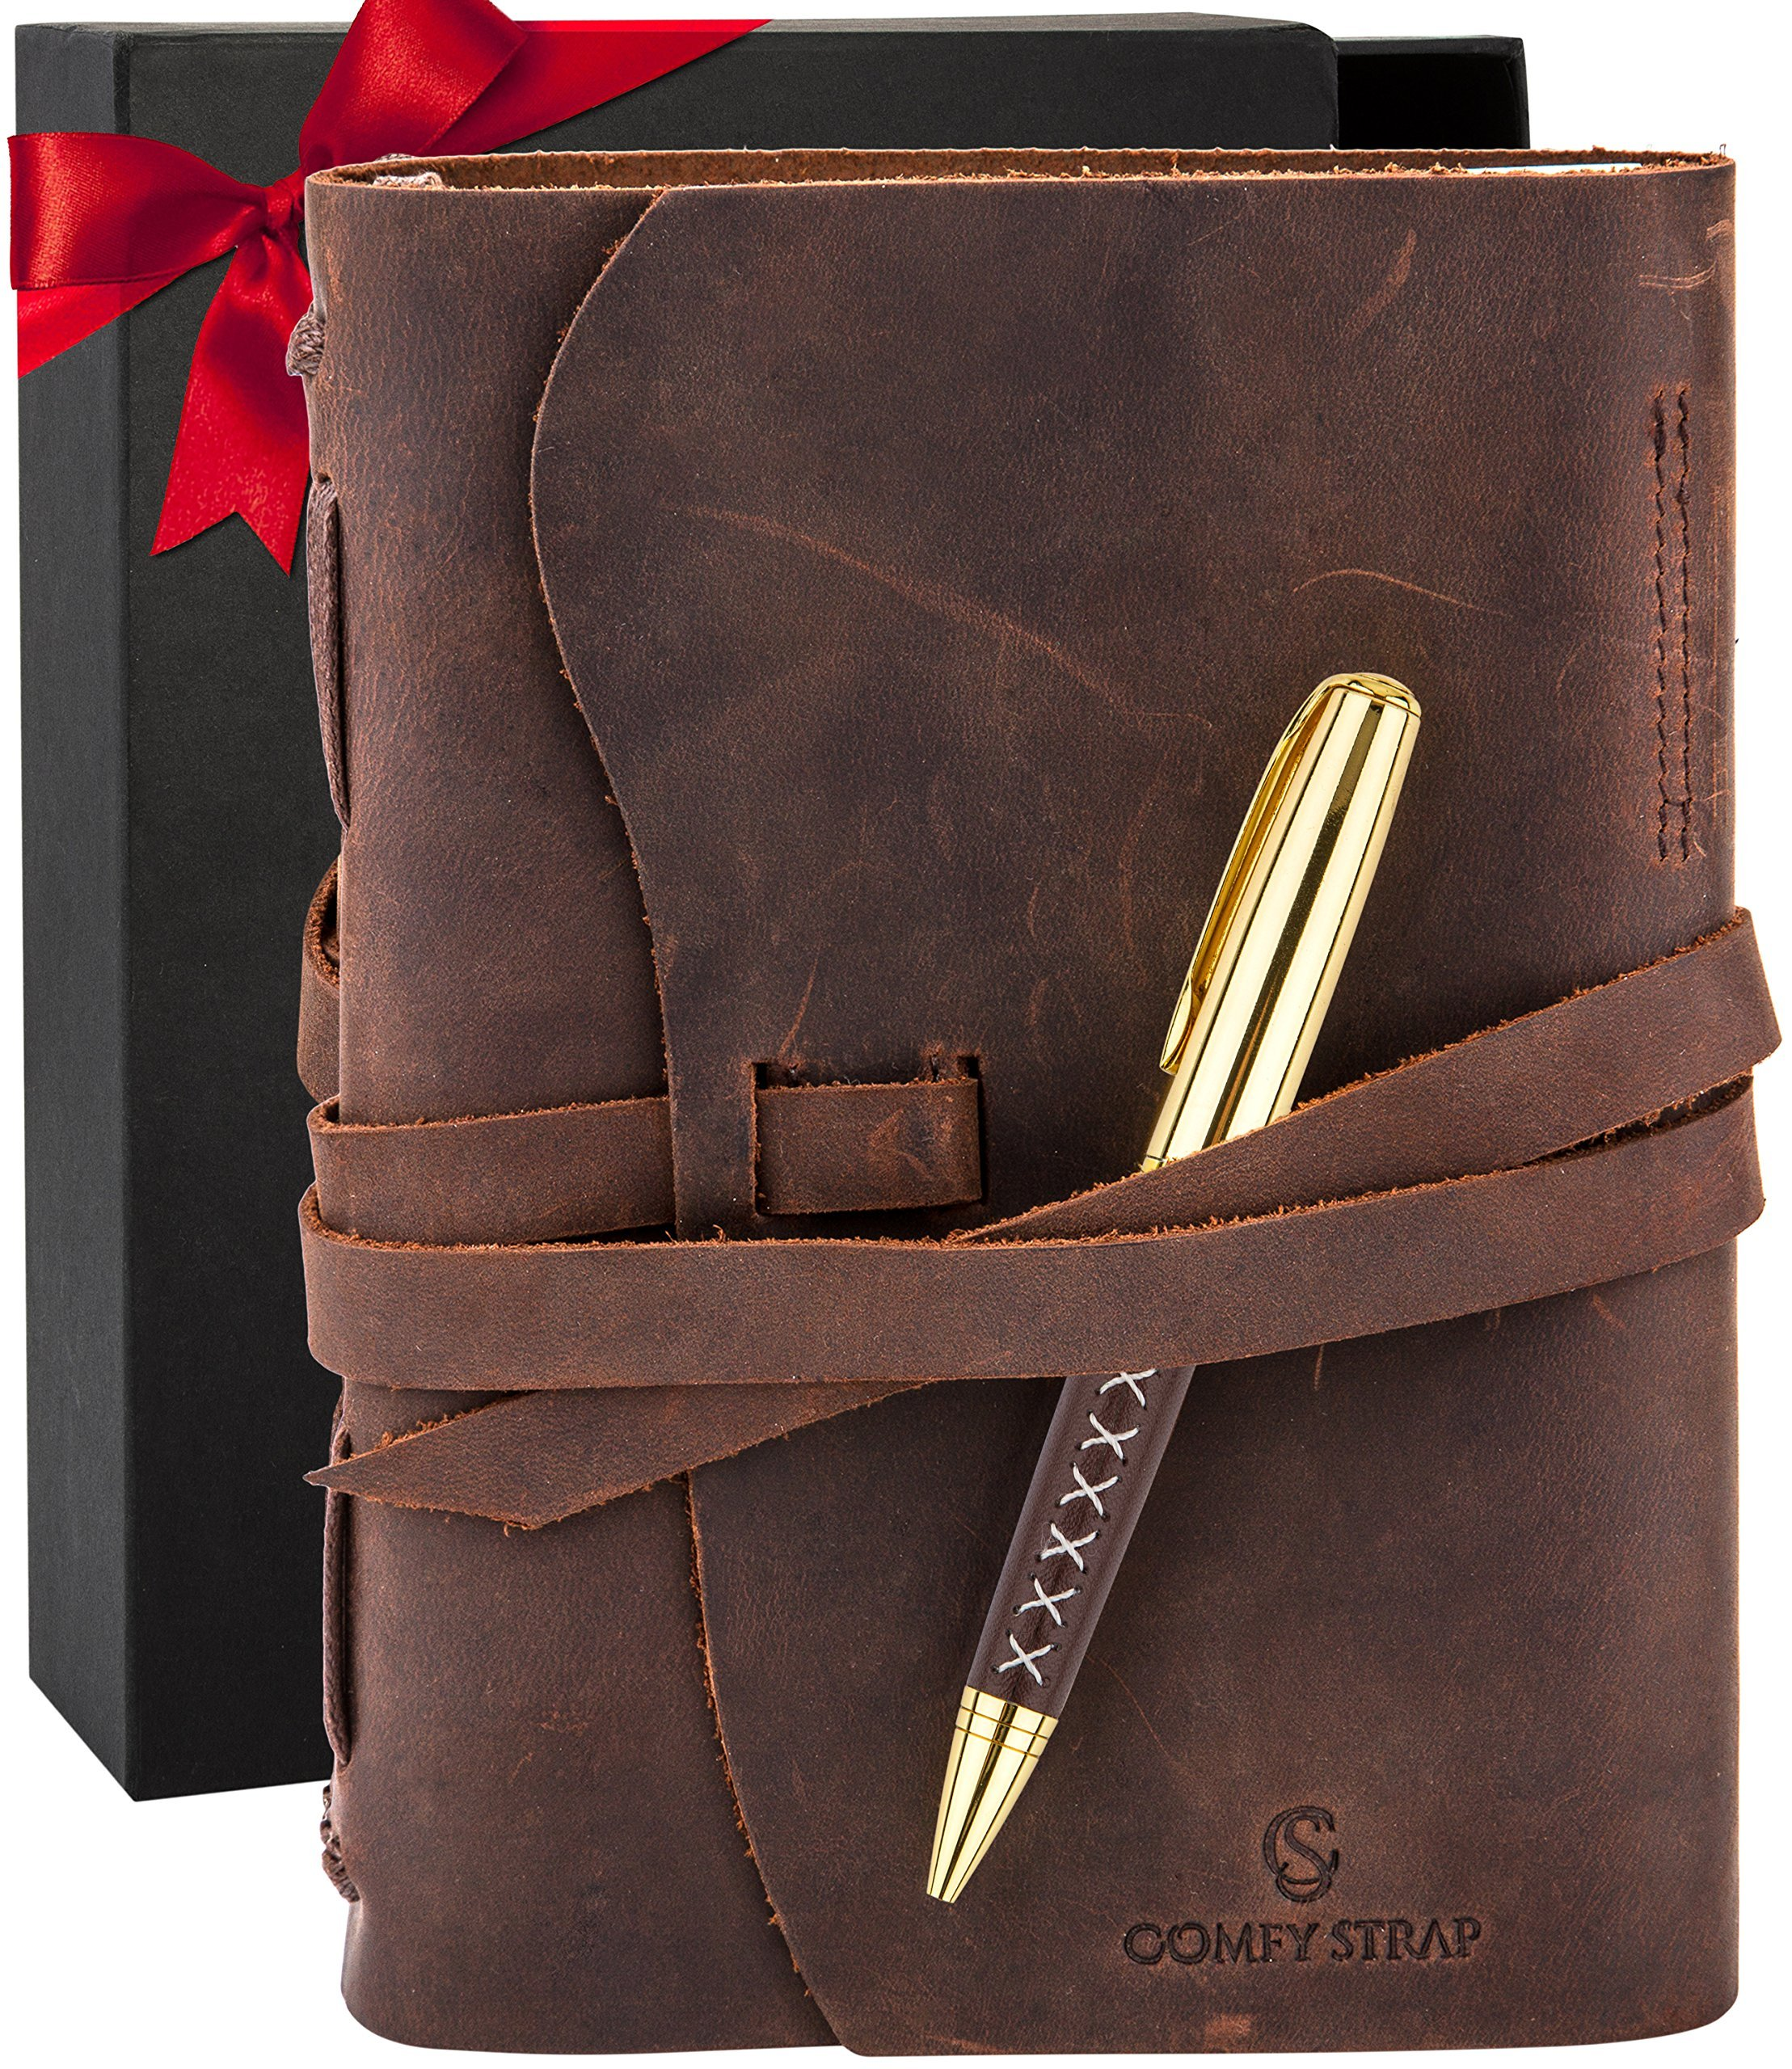 Leather Journal - Bound Notebook For Men & Women - LUXURY Gift Set For Anniversary & Birthday, Christmas & Holiday